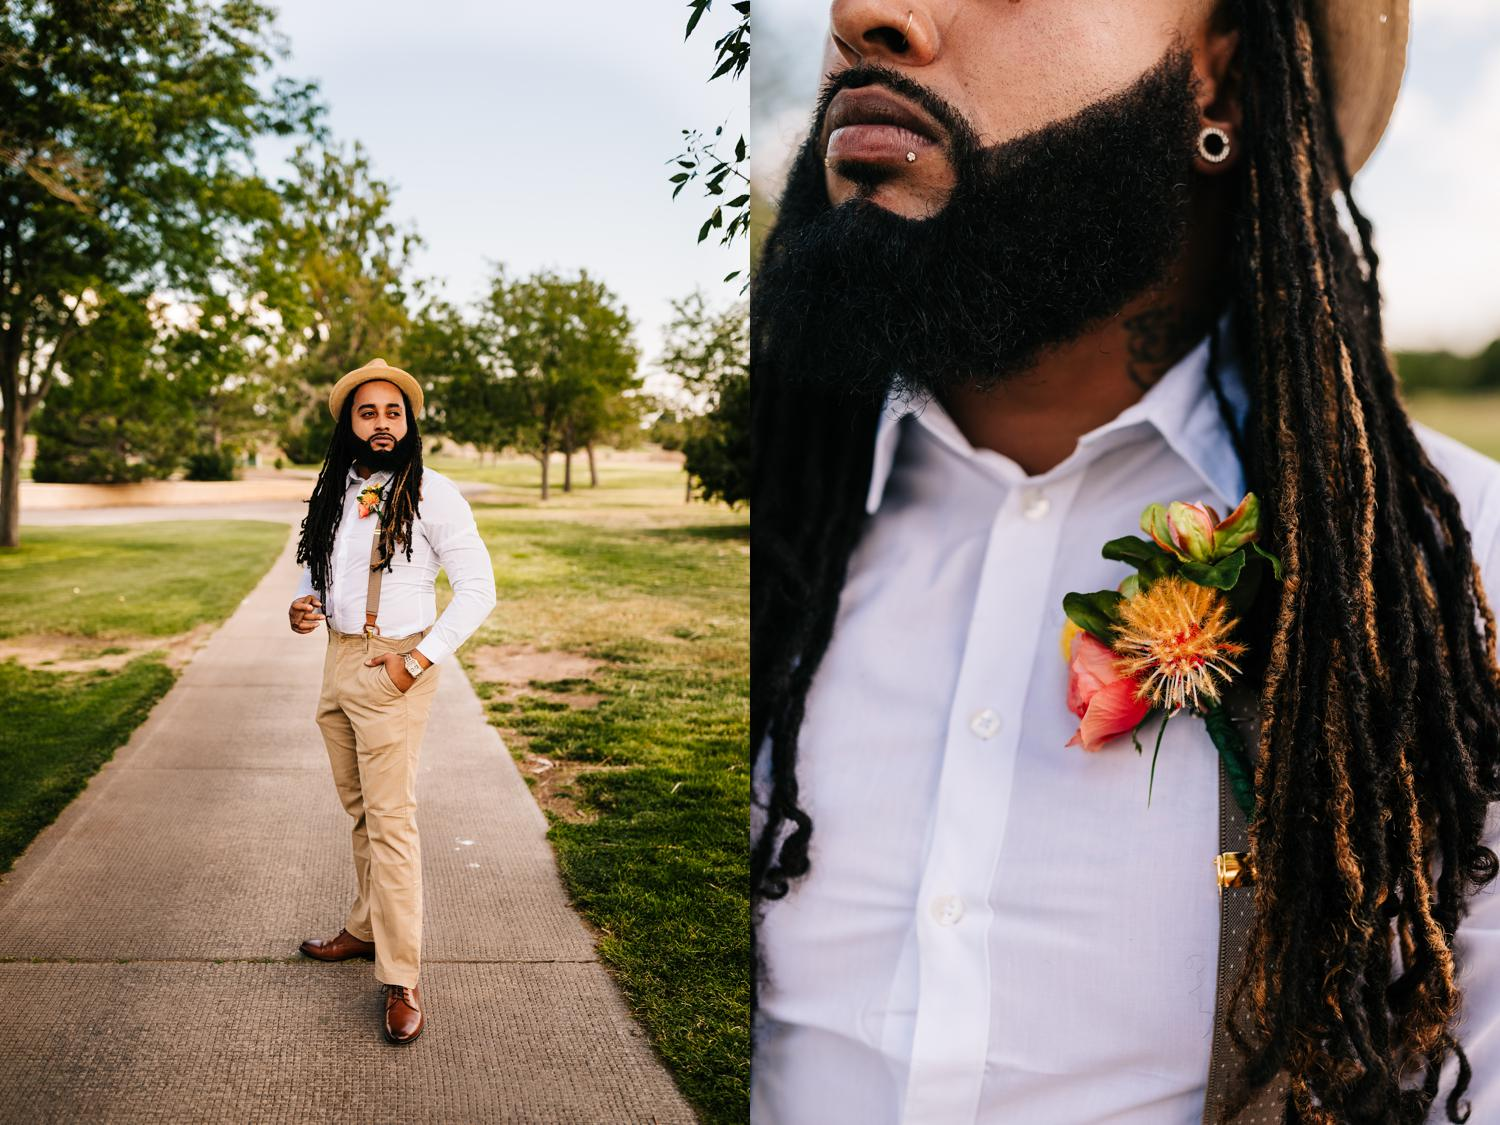 Groomsman attire and tropical boutonniere for New Mexico wedding